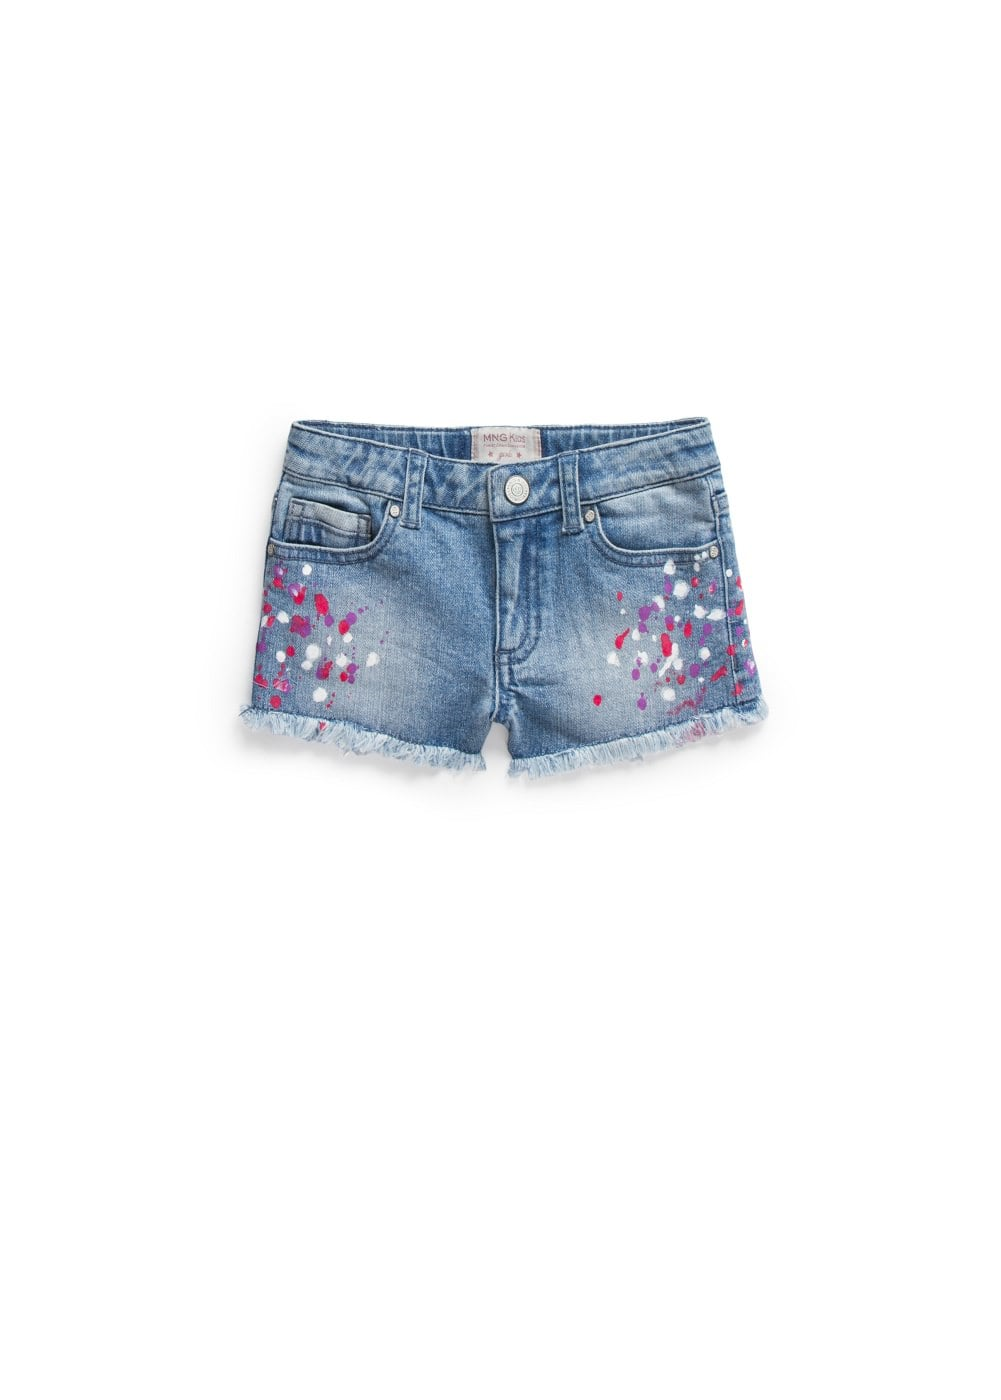 Paint denim shorts